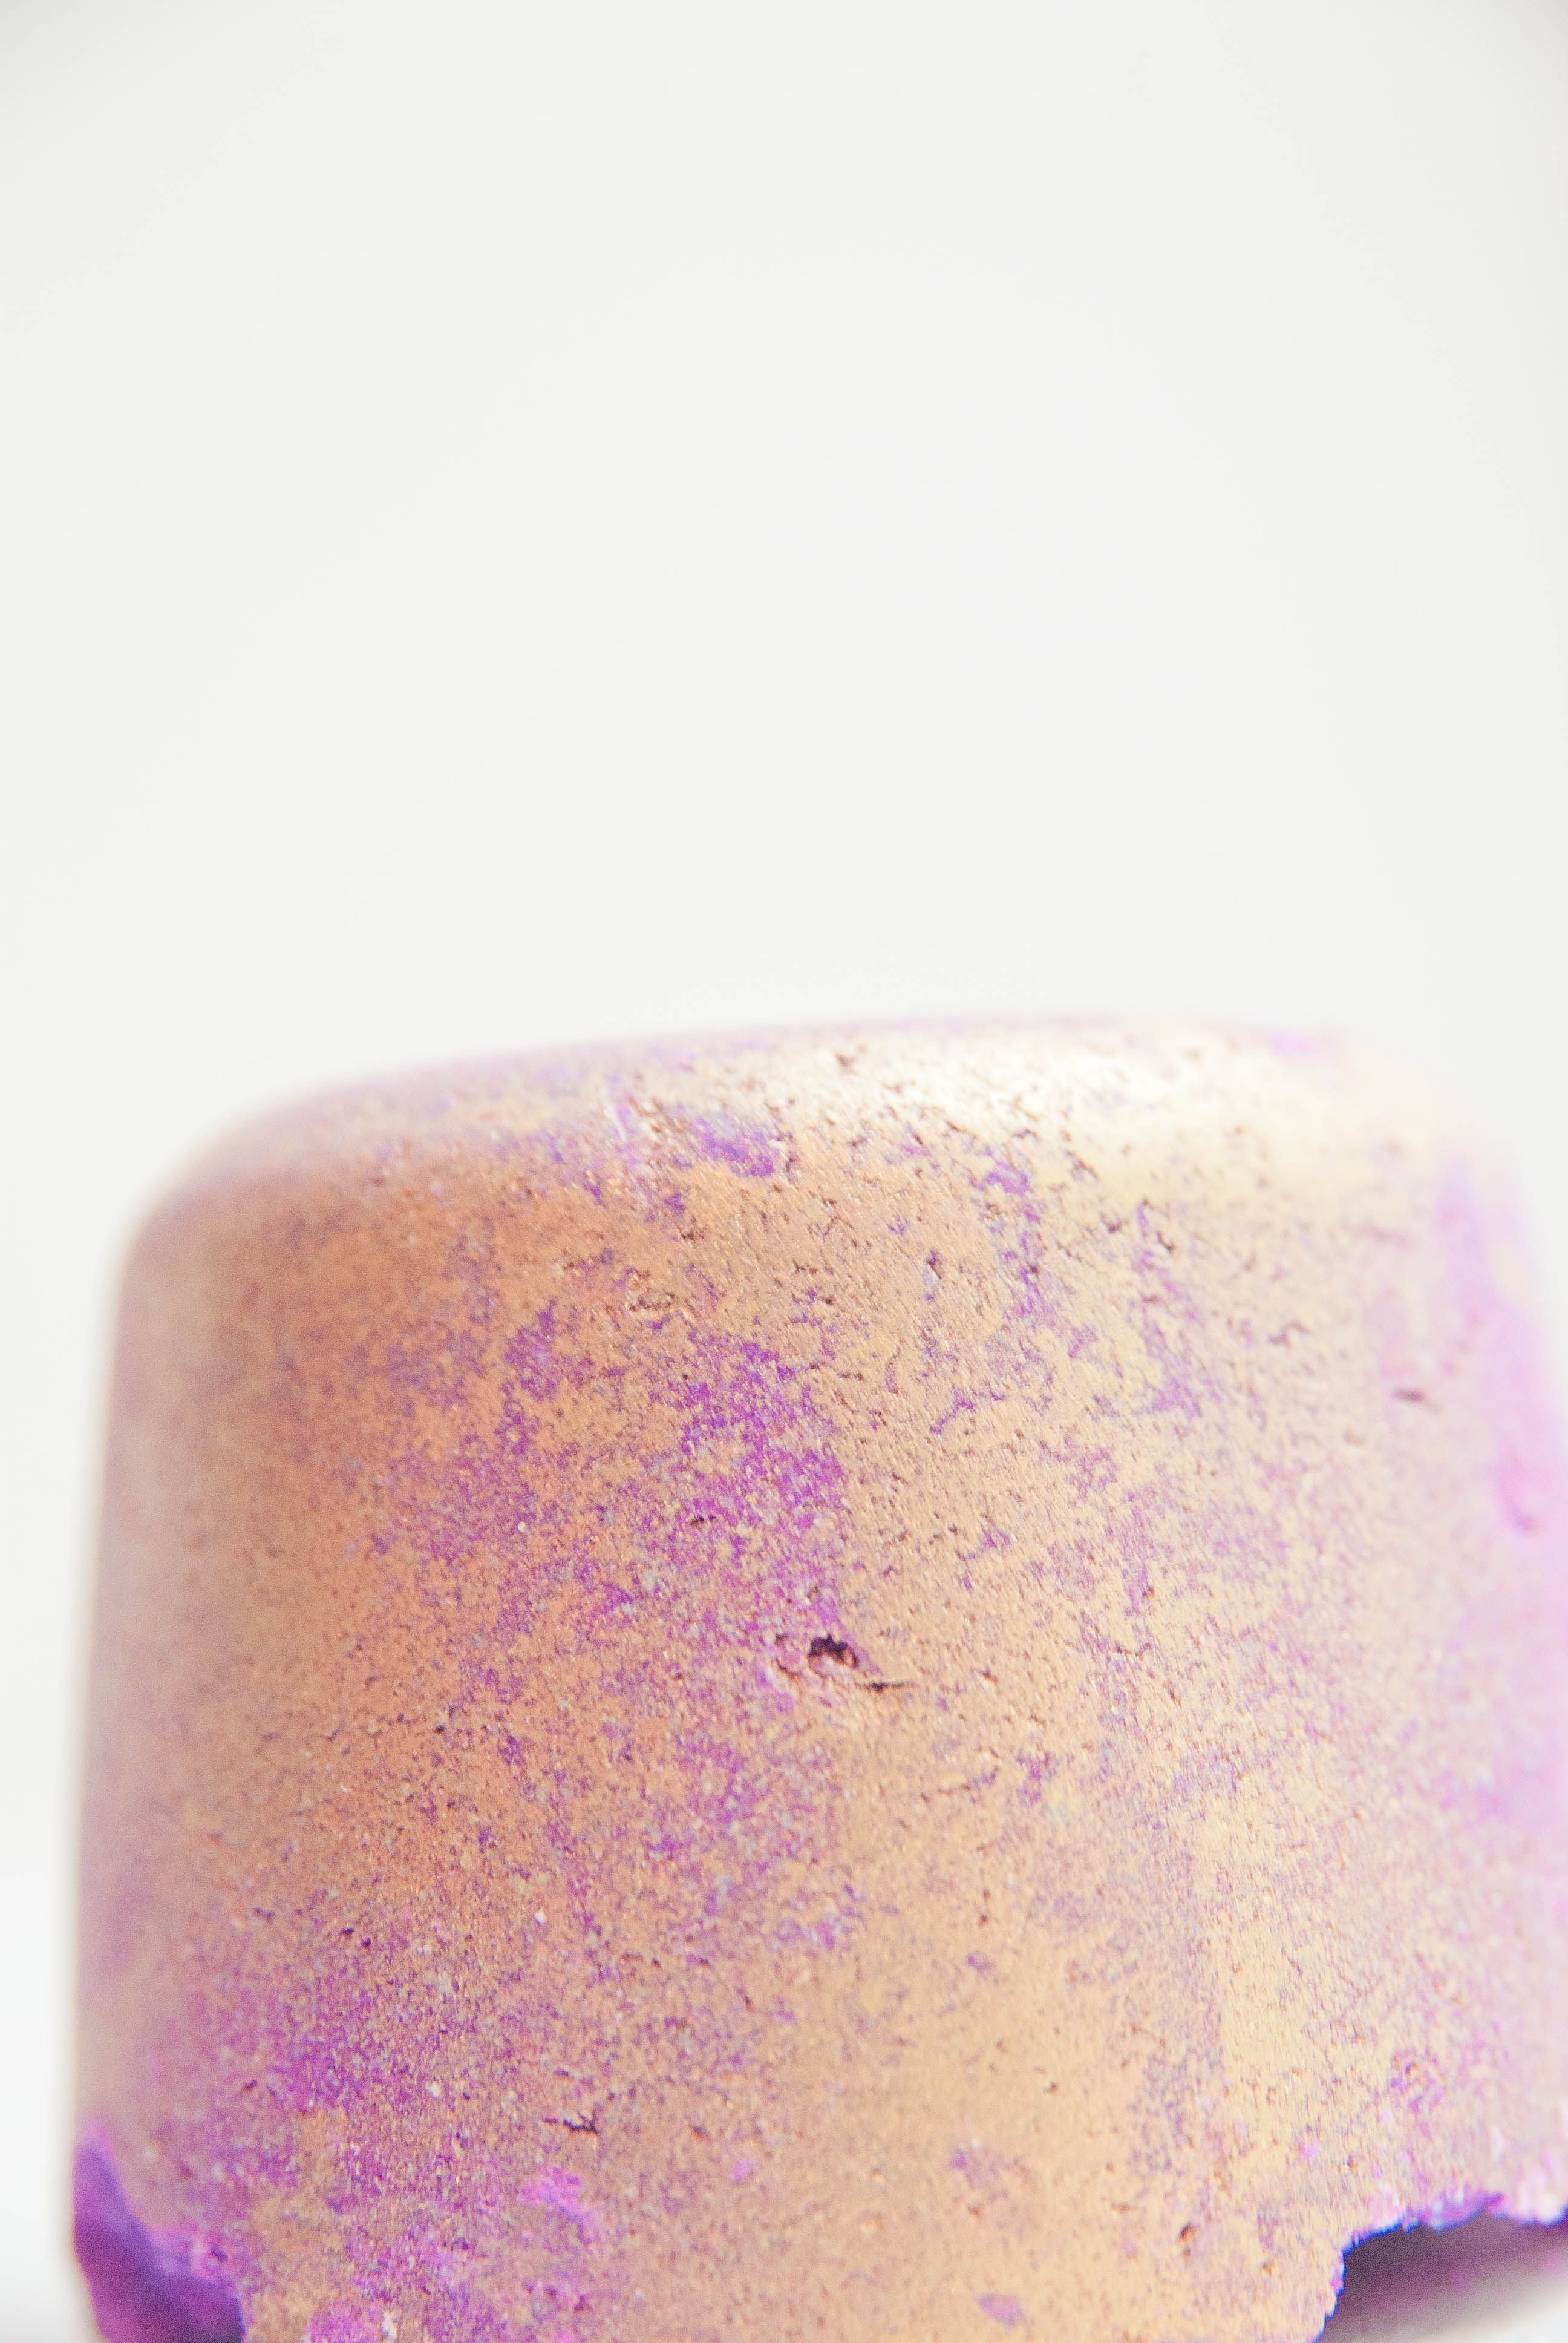 Phoenix Rising Bath Bomb Mmmm This Smells Great And Makes Your Skin So Soft And Makes Pretty Colors Lush Cosmetics Bath Bombs Lush Cosmetics Lush Products